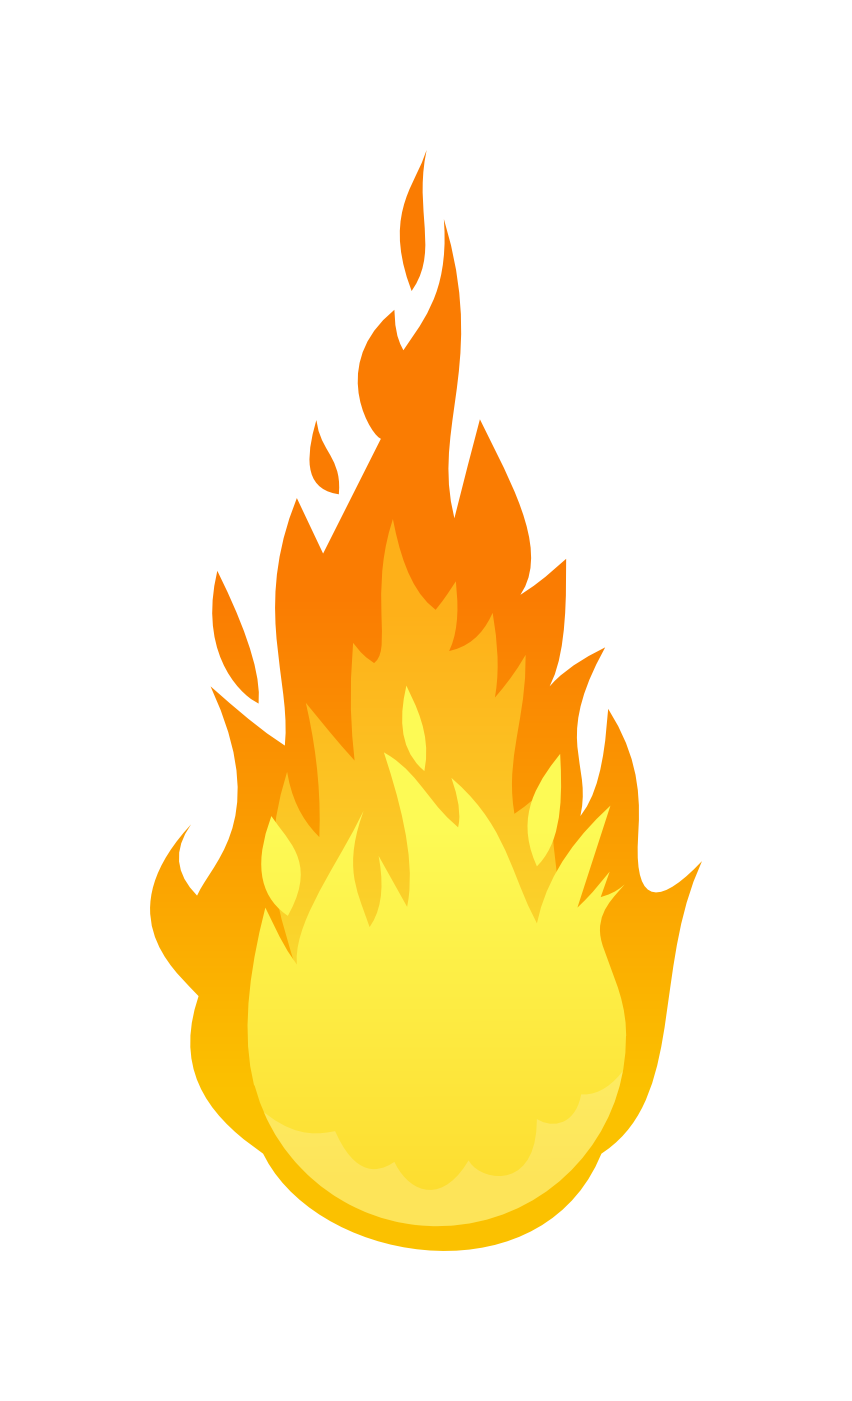 Flame Fire Png Flame Picture Fire Image Logo Design Free Templates